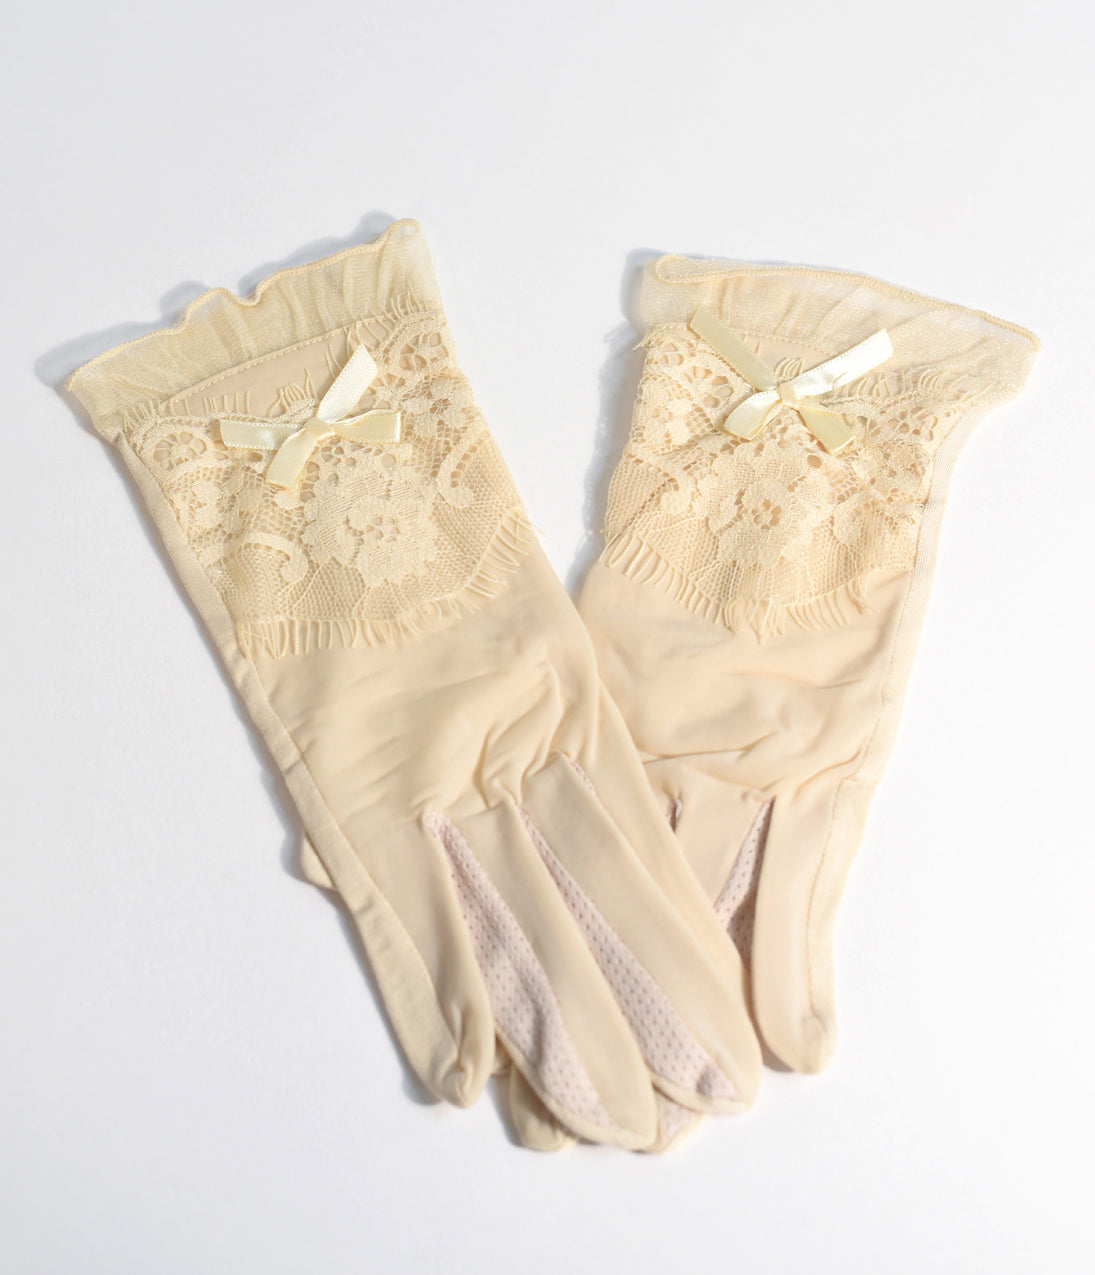 Vintage Style Gloves- Long, Wrist, Evening, Day, Leather, Lace Beige Vintage Lace Sheer Wrist Gloves $18.00 AT vintagedancer.com